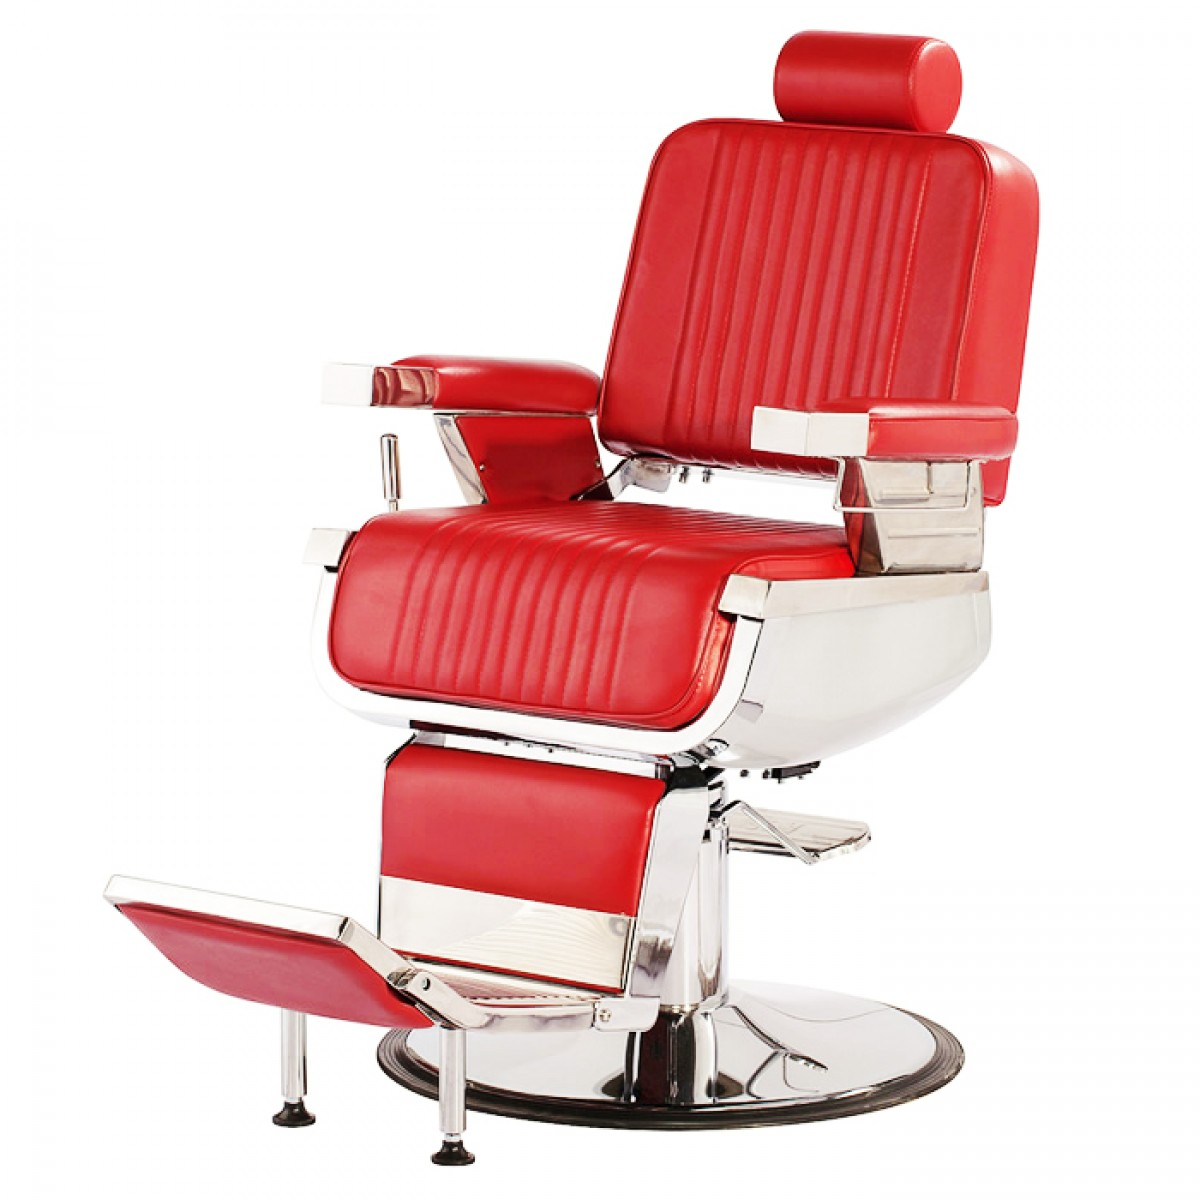 Quot Constantine Quot Barber Chair In Red Red Barber Chairs